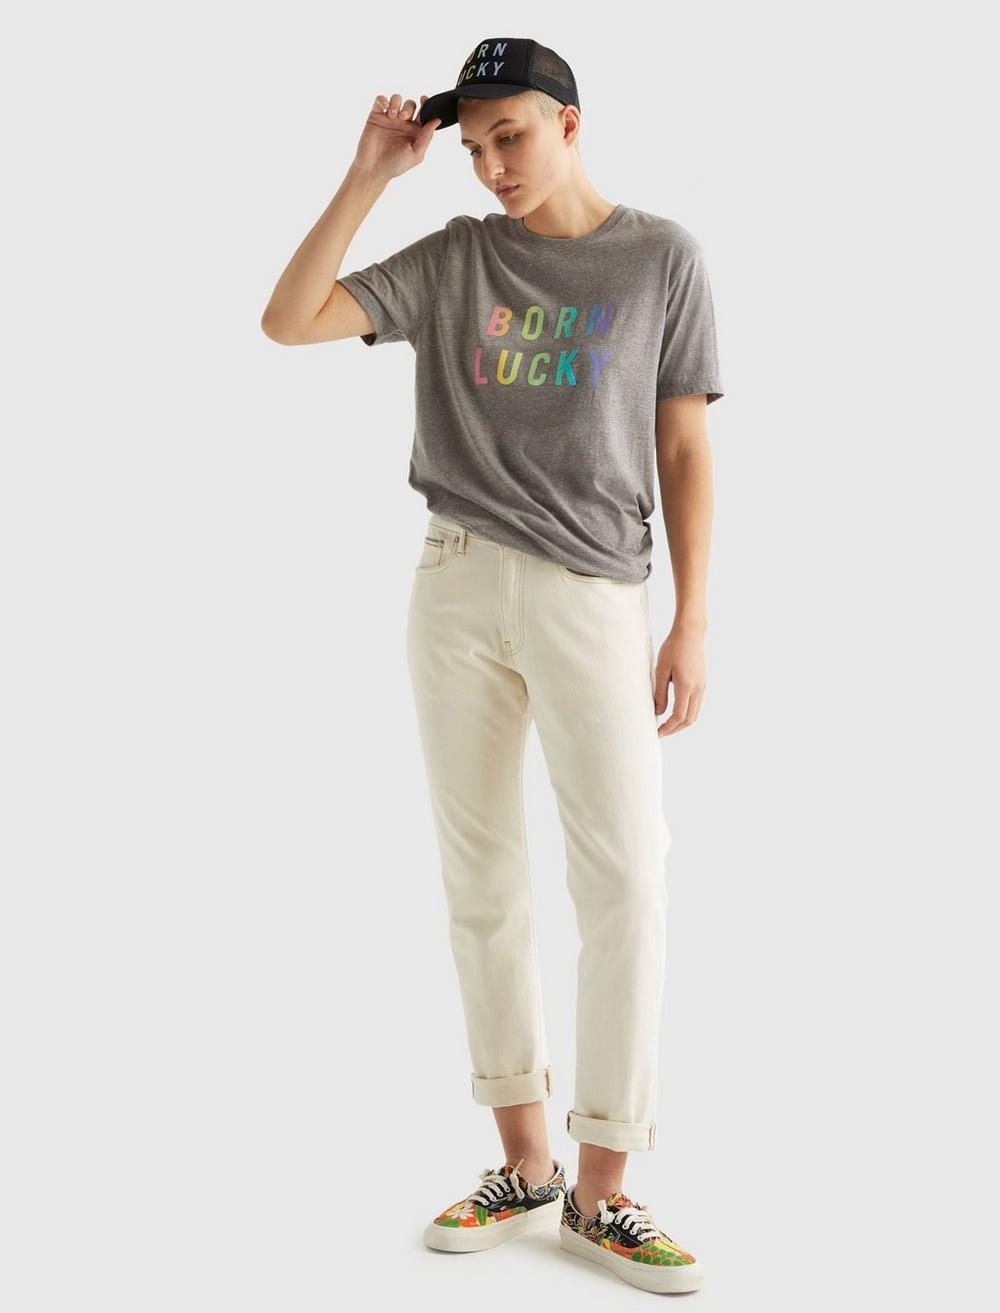 PRIDE BORN LUCKY GENDER NEUTRAL TEE, image 8